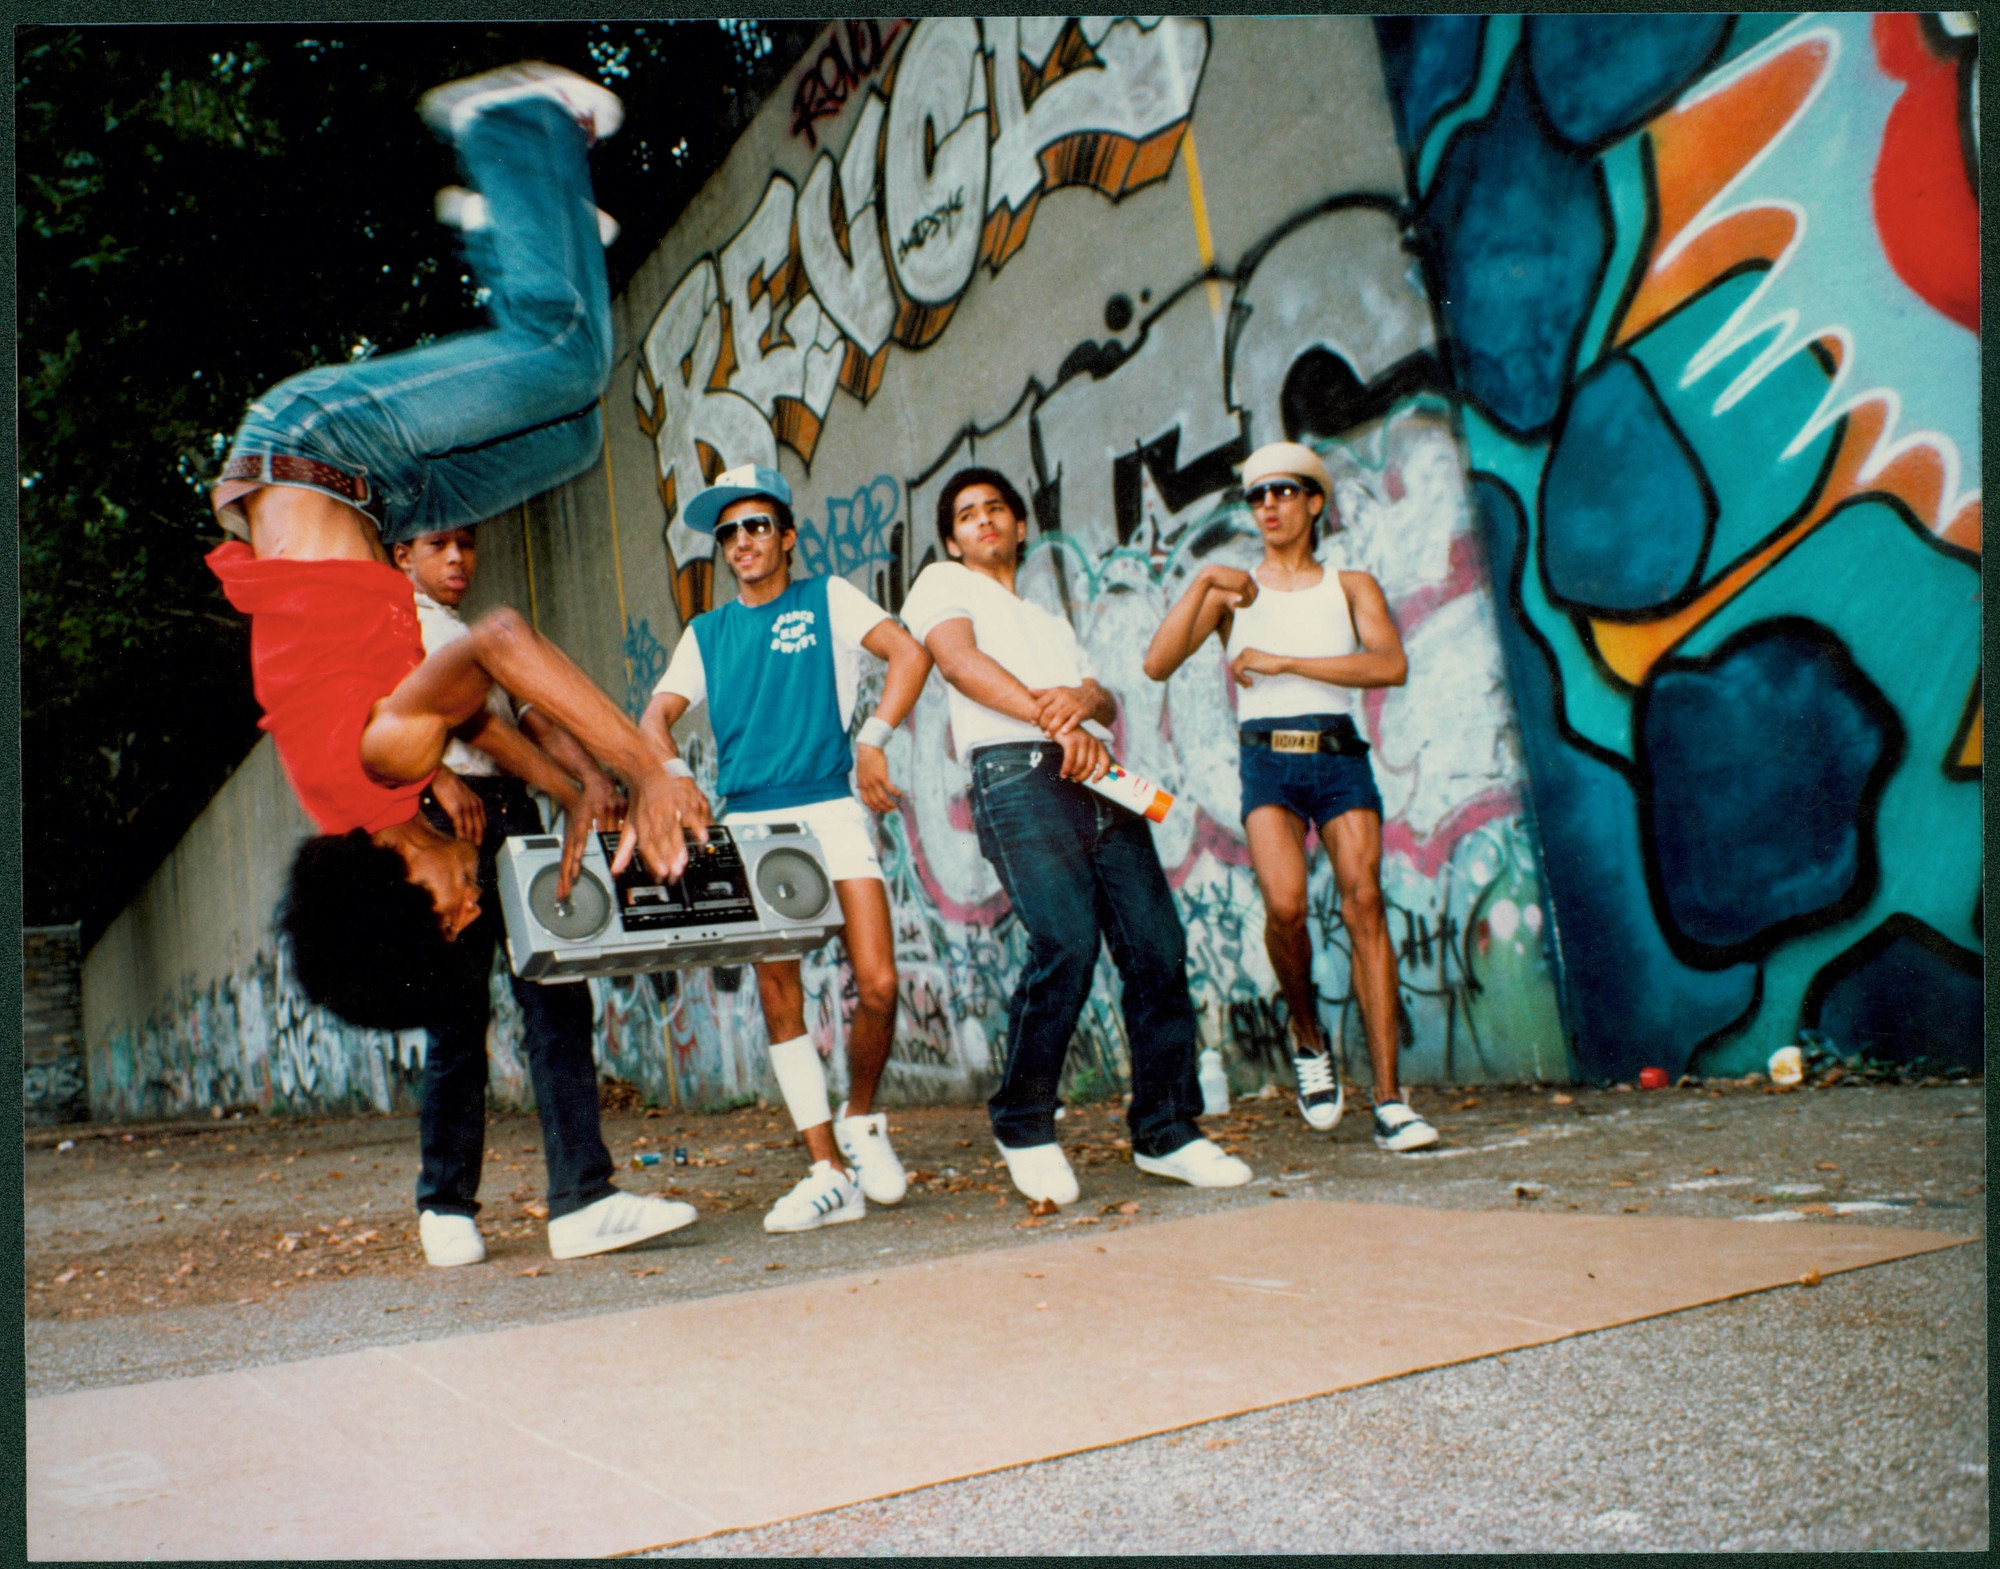 Wild Style. 1983. USA. Directed by Charlie Ahearn. Image courtesy of Music Box Films